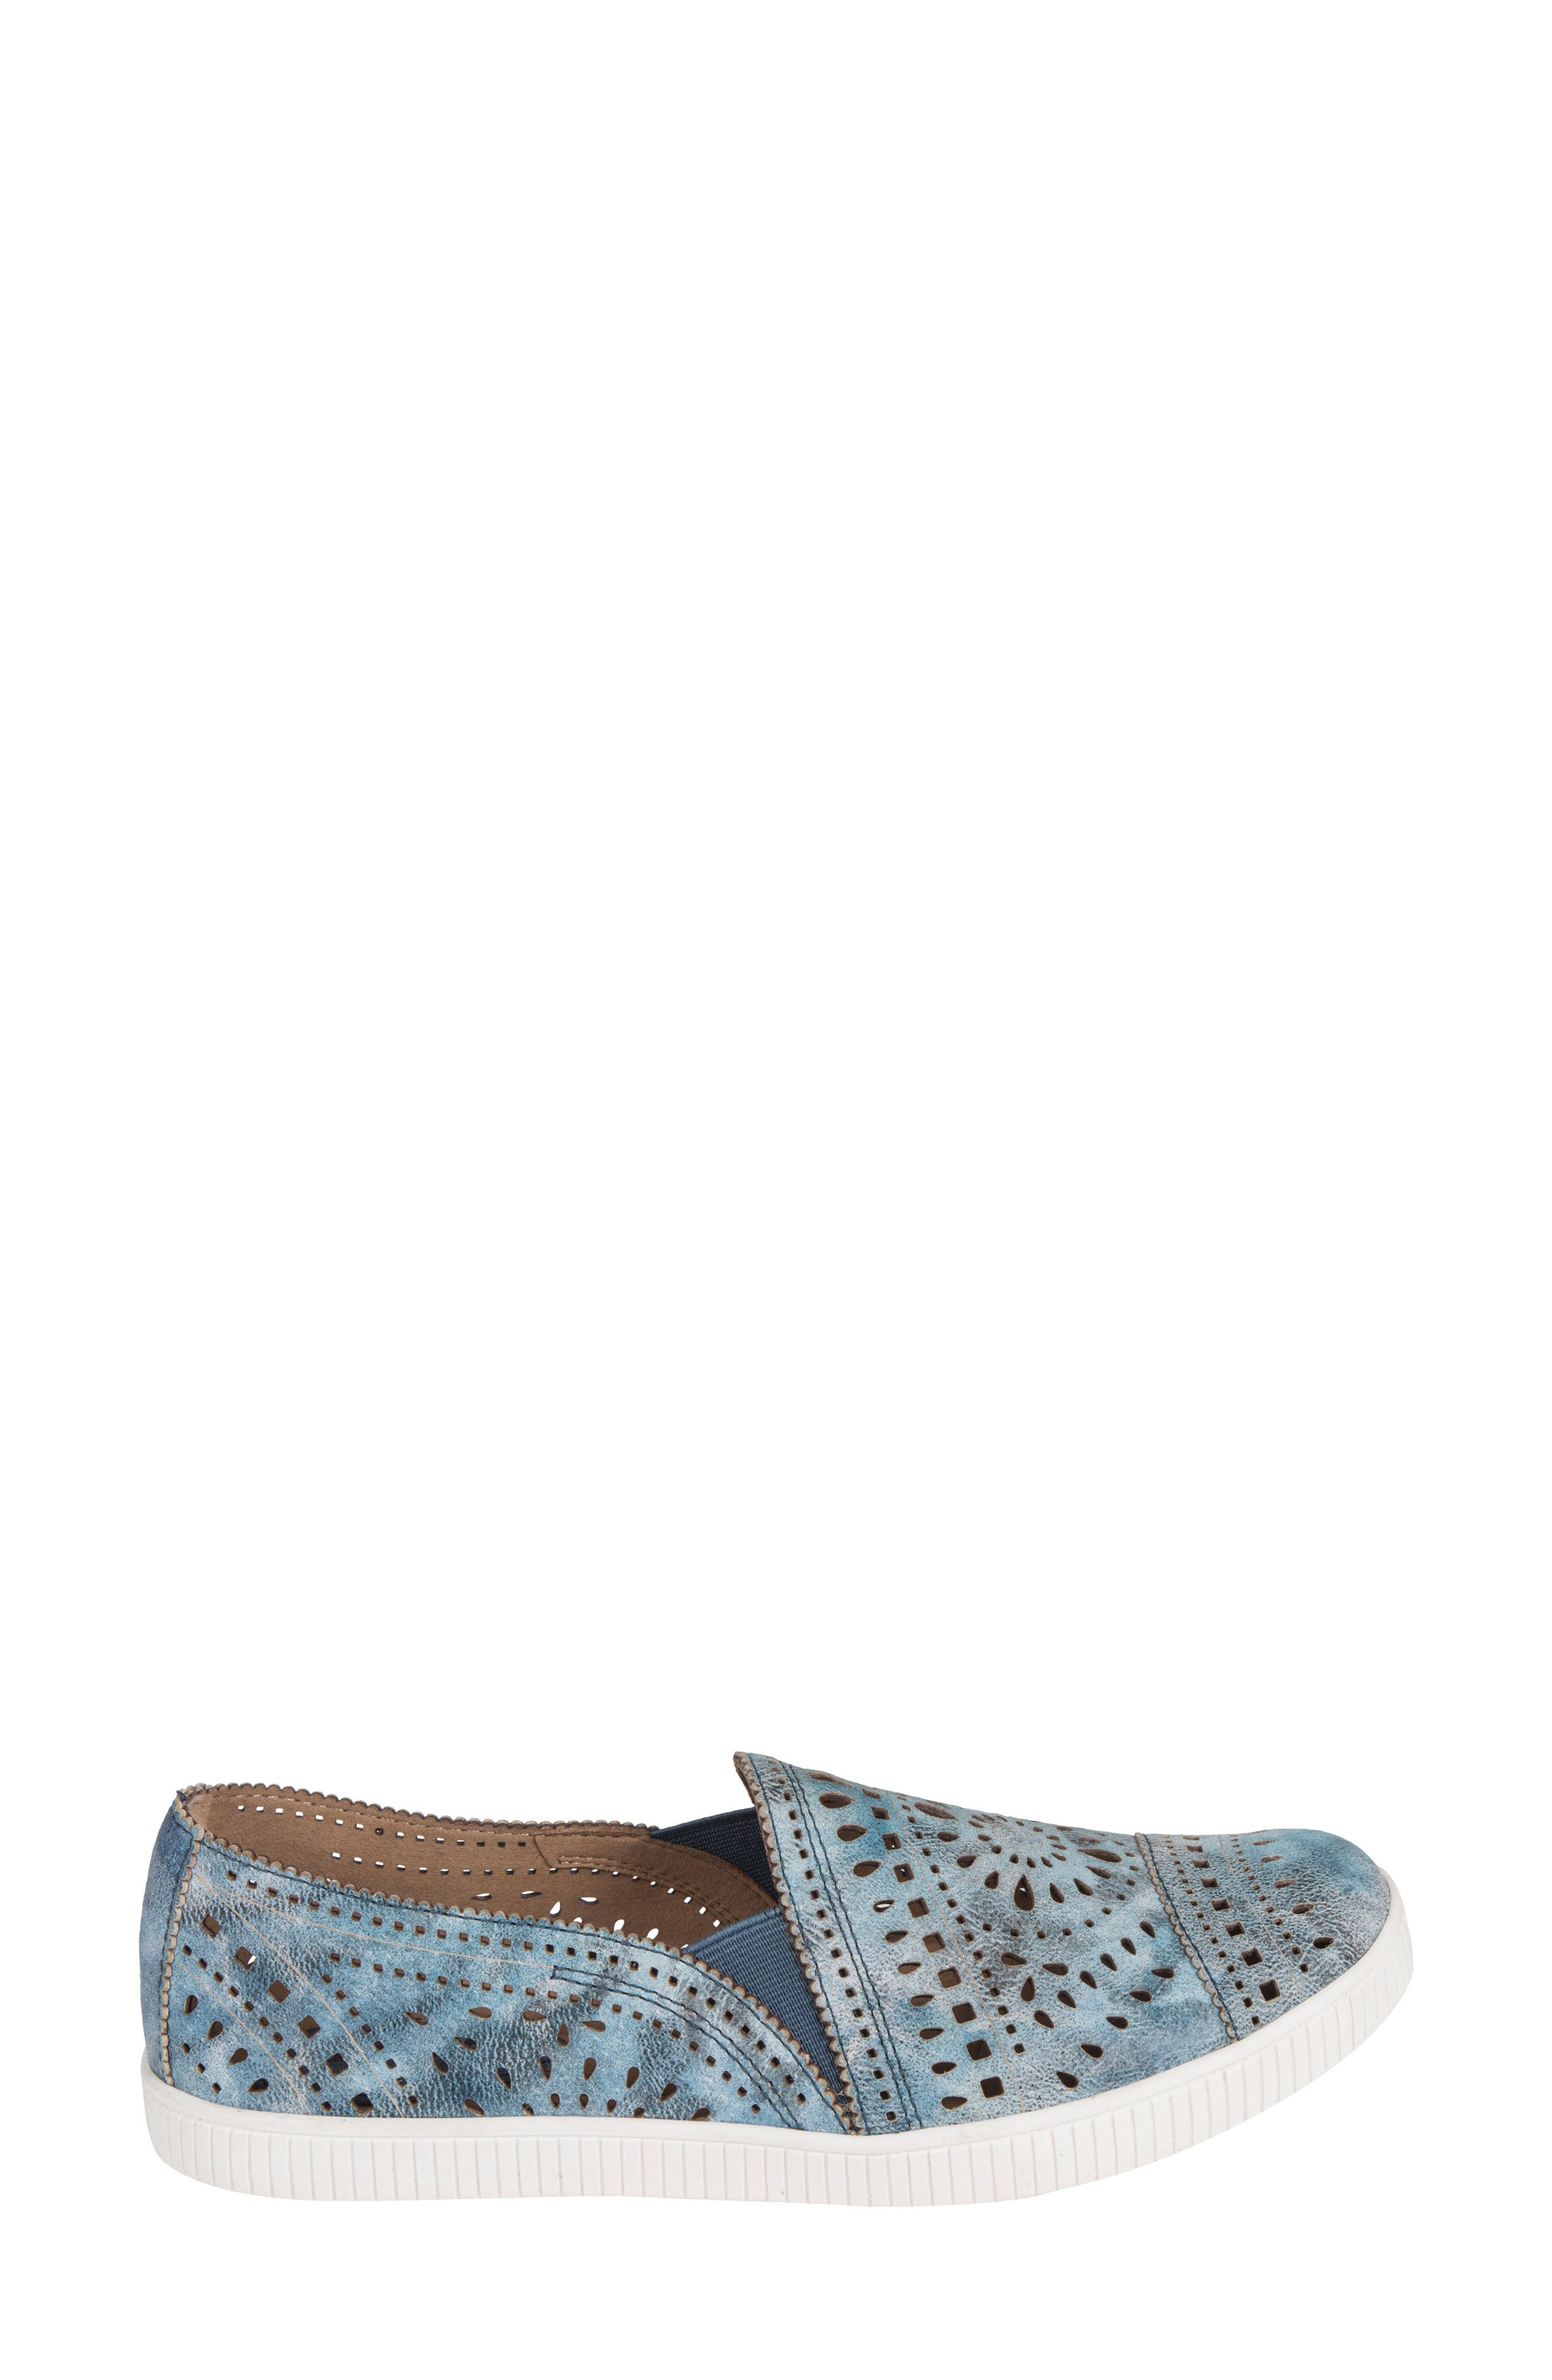 Tayberry Perforated Slip-On Sneaker,                             Alternate thumbnail 11, color,